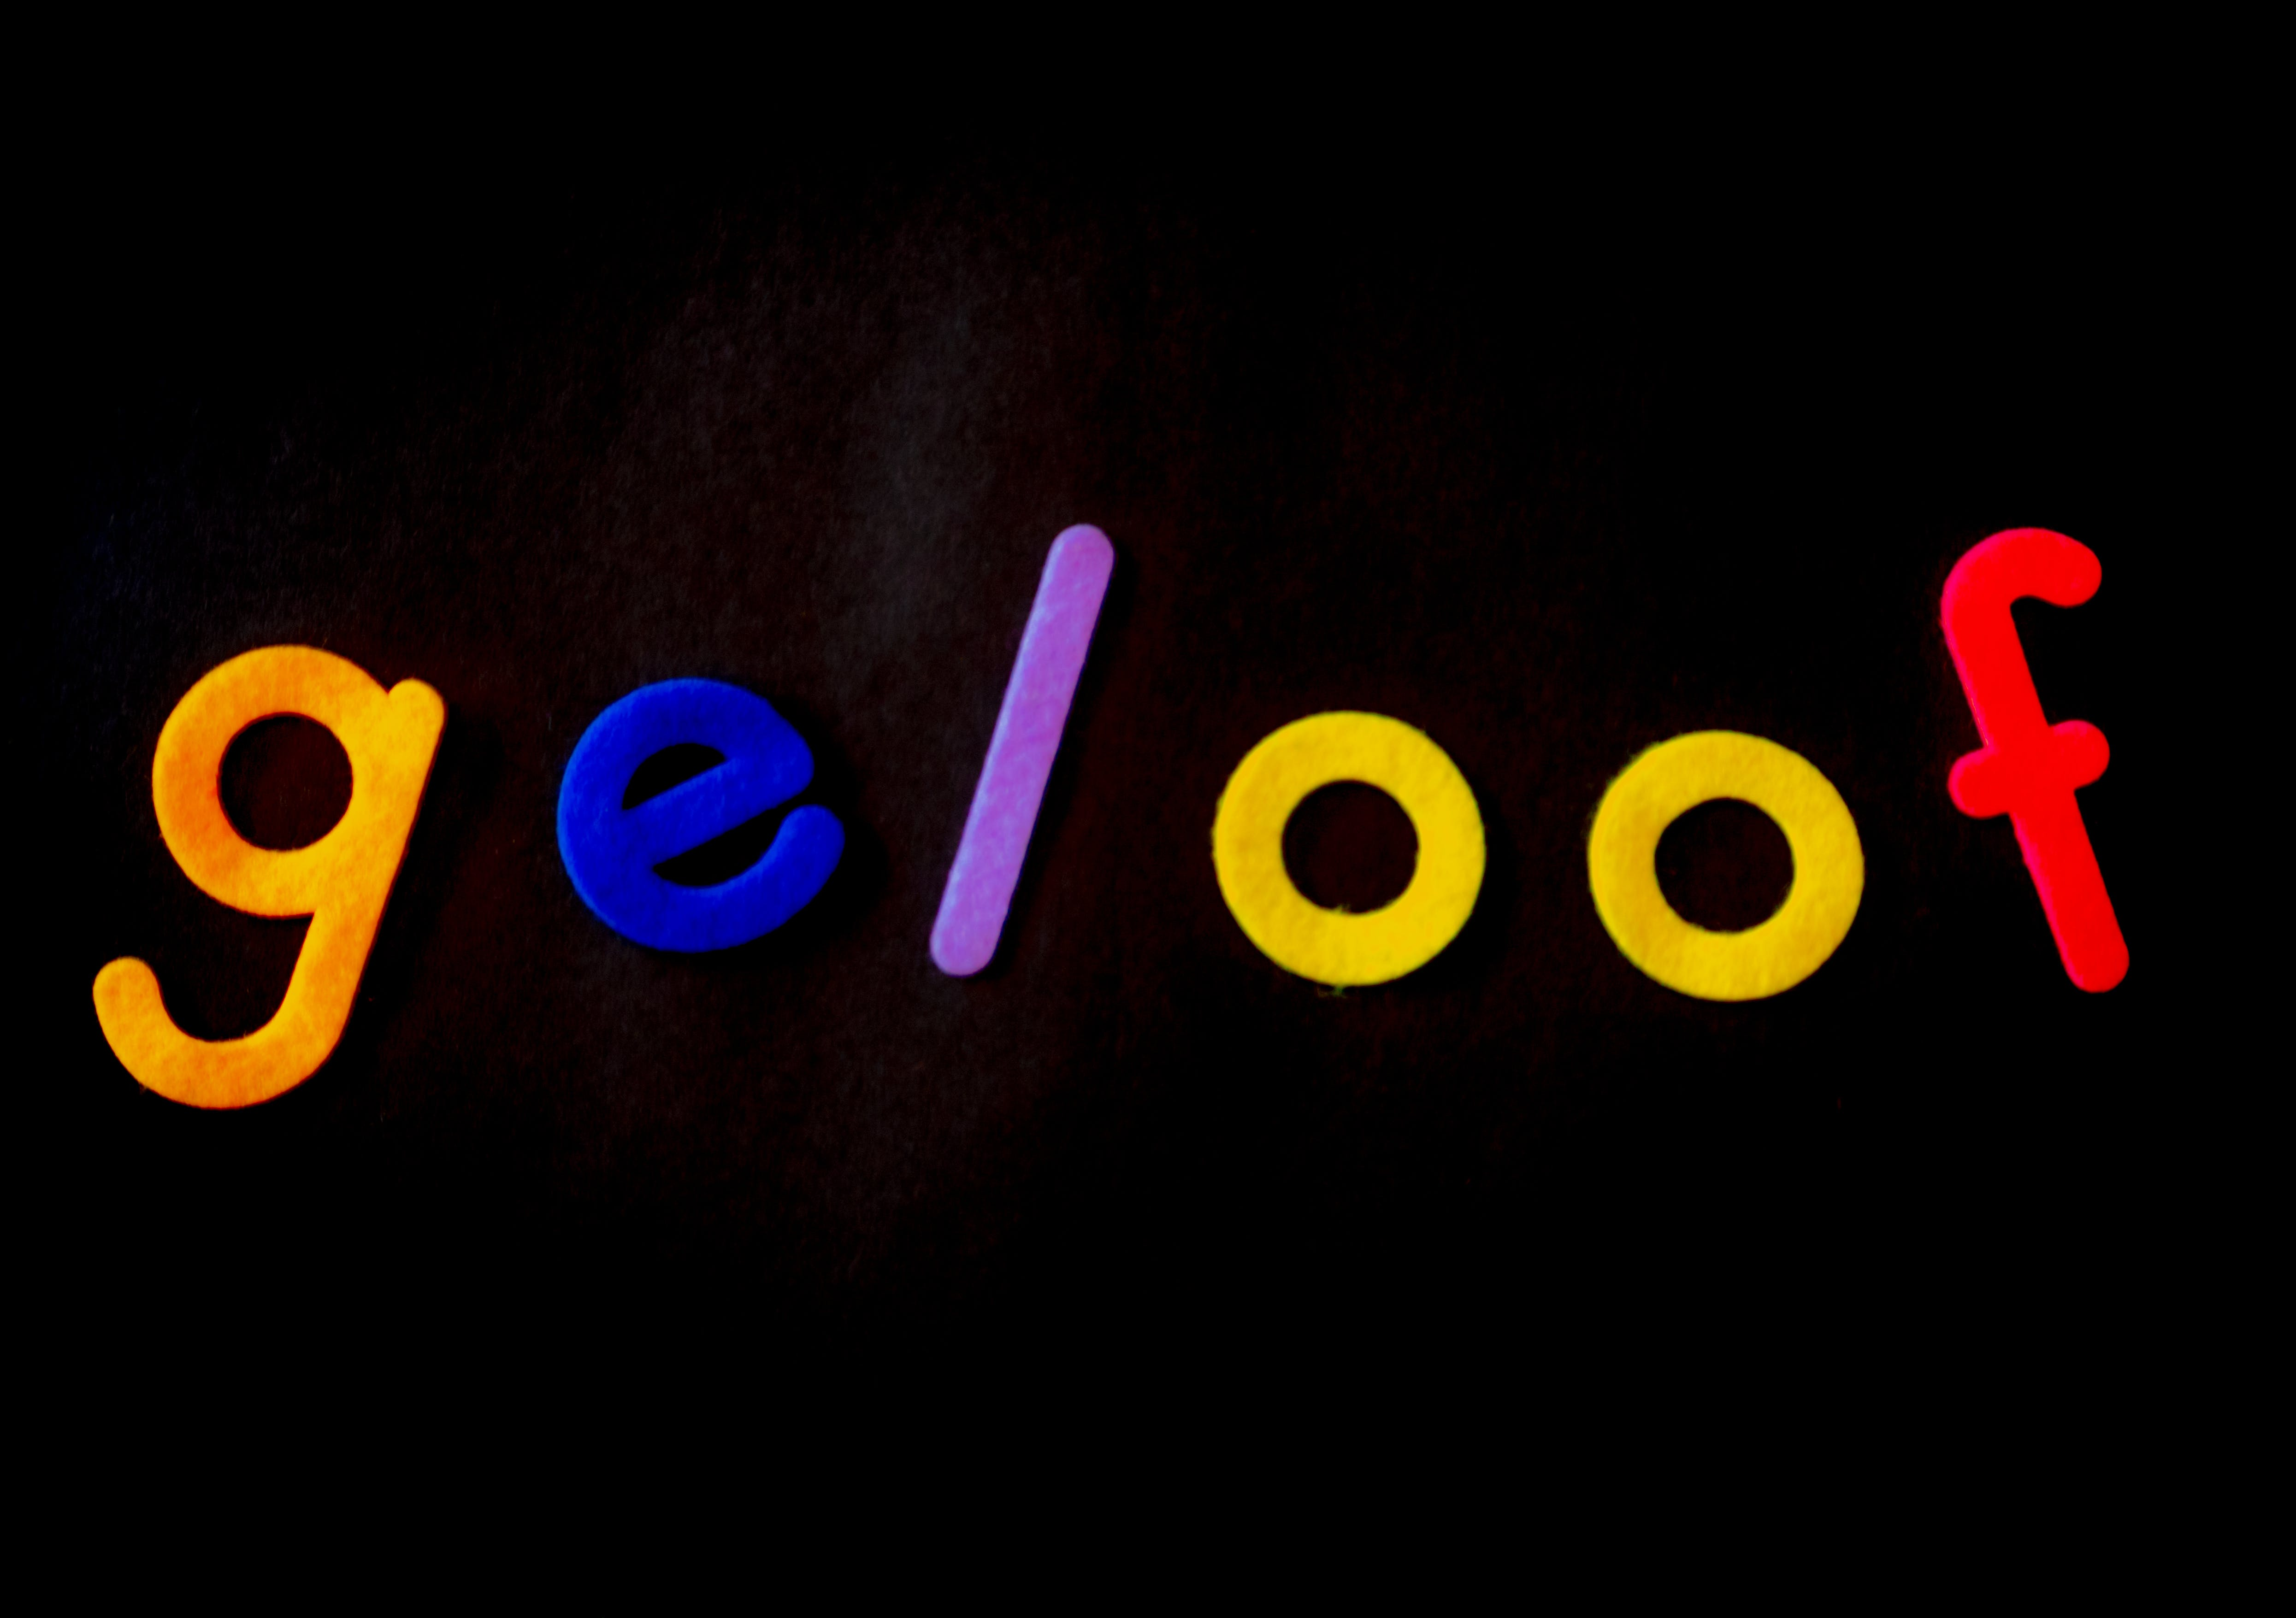 Multicolored Geloof Text